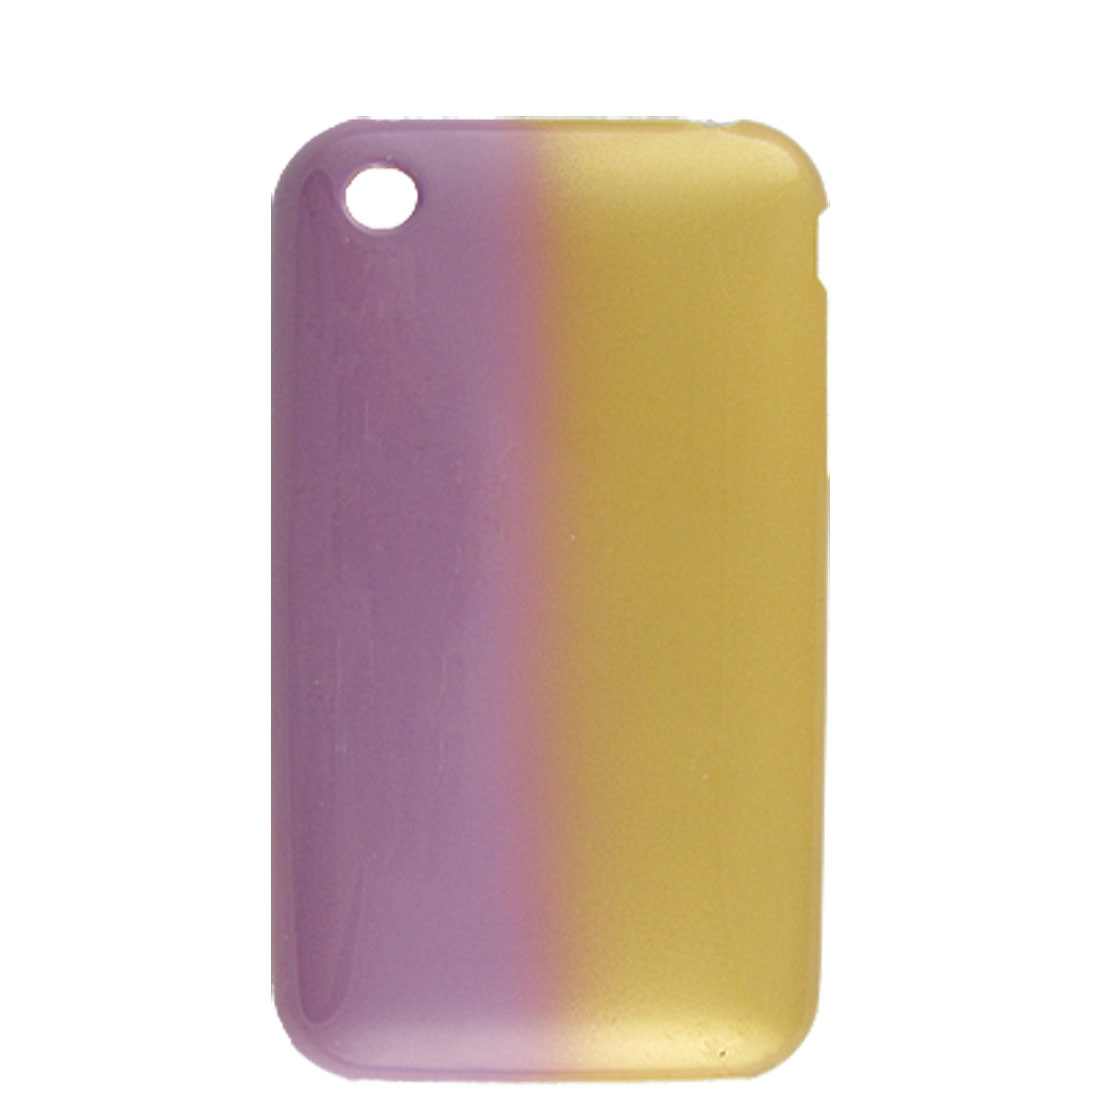 Hard Plastic Back Case for iPhone 3G Gold Tone Purple